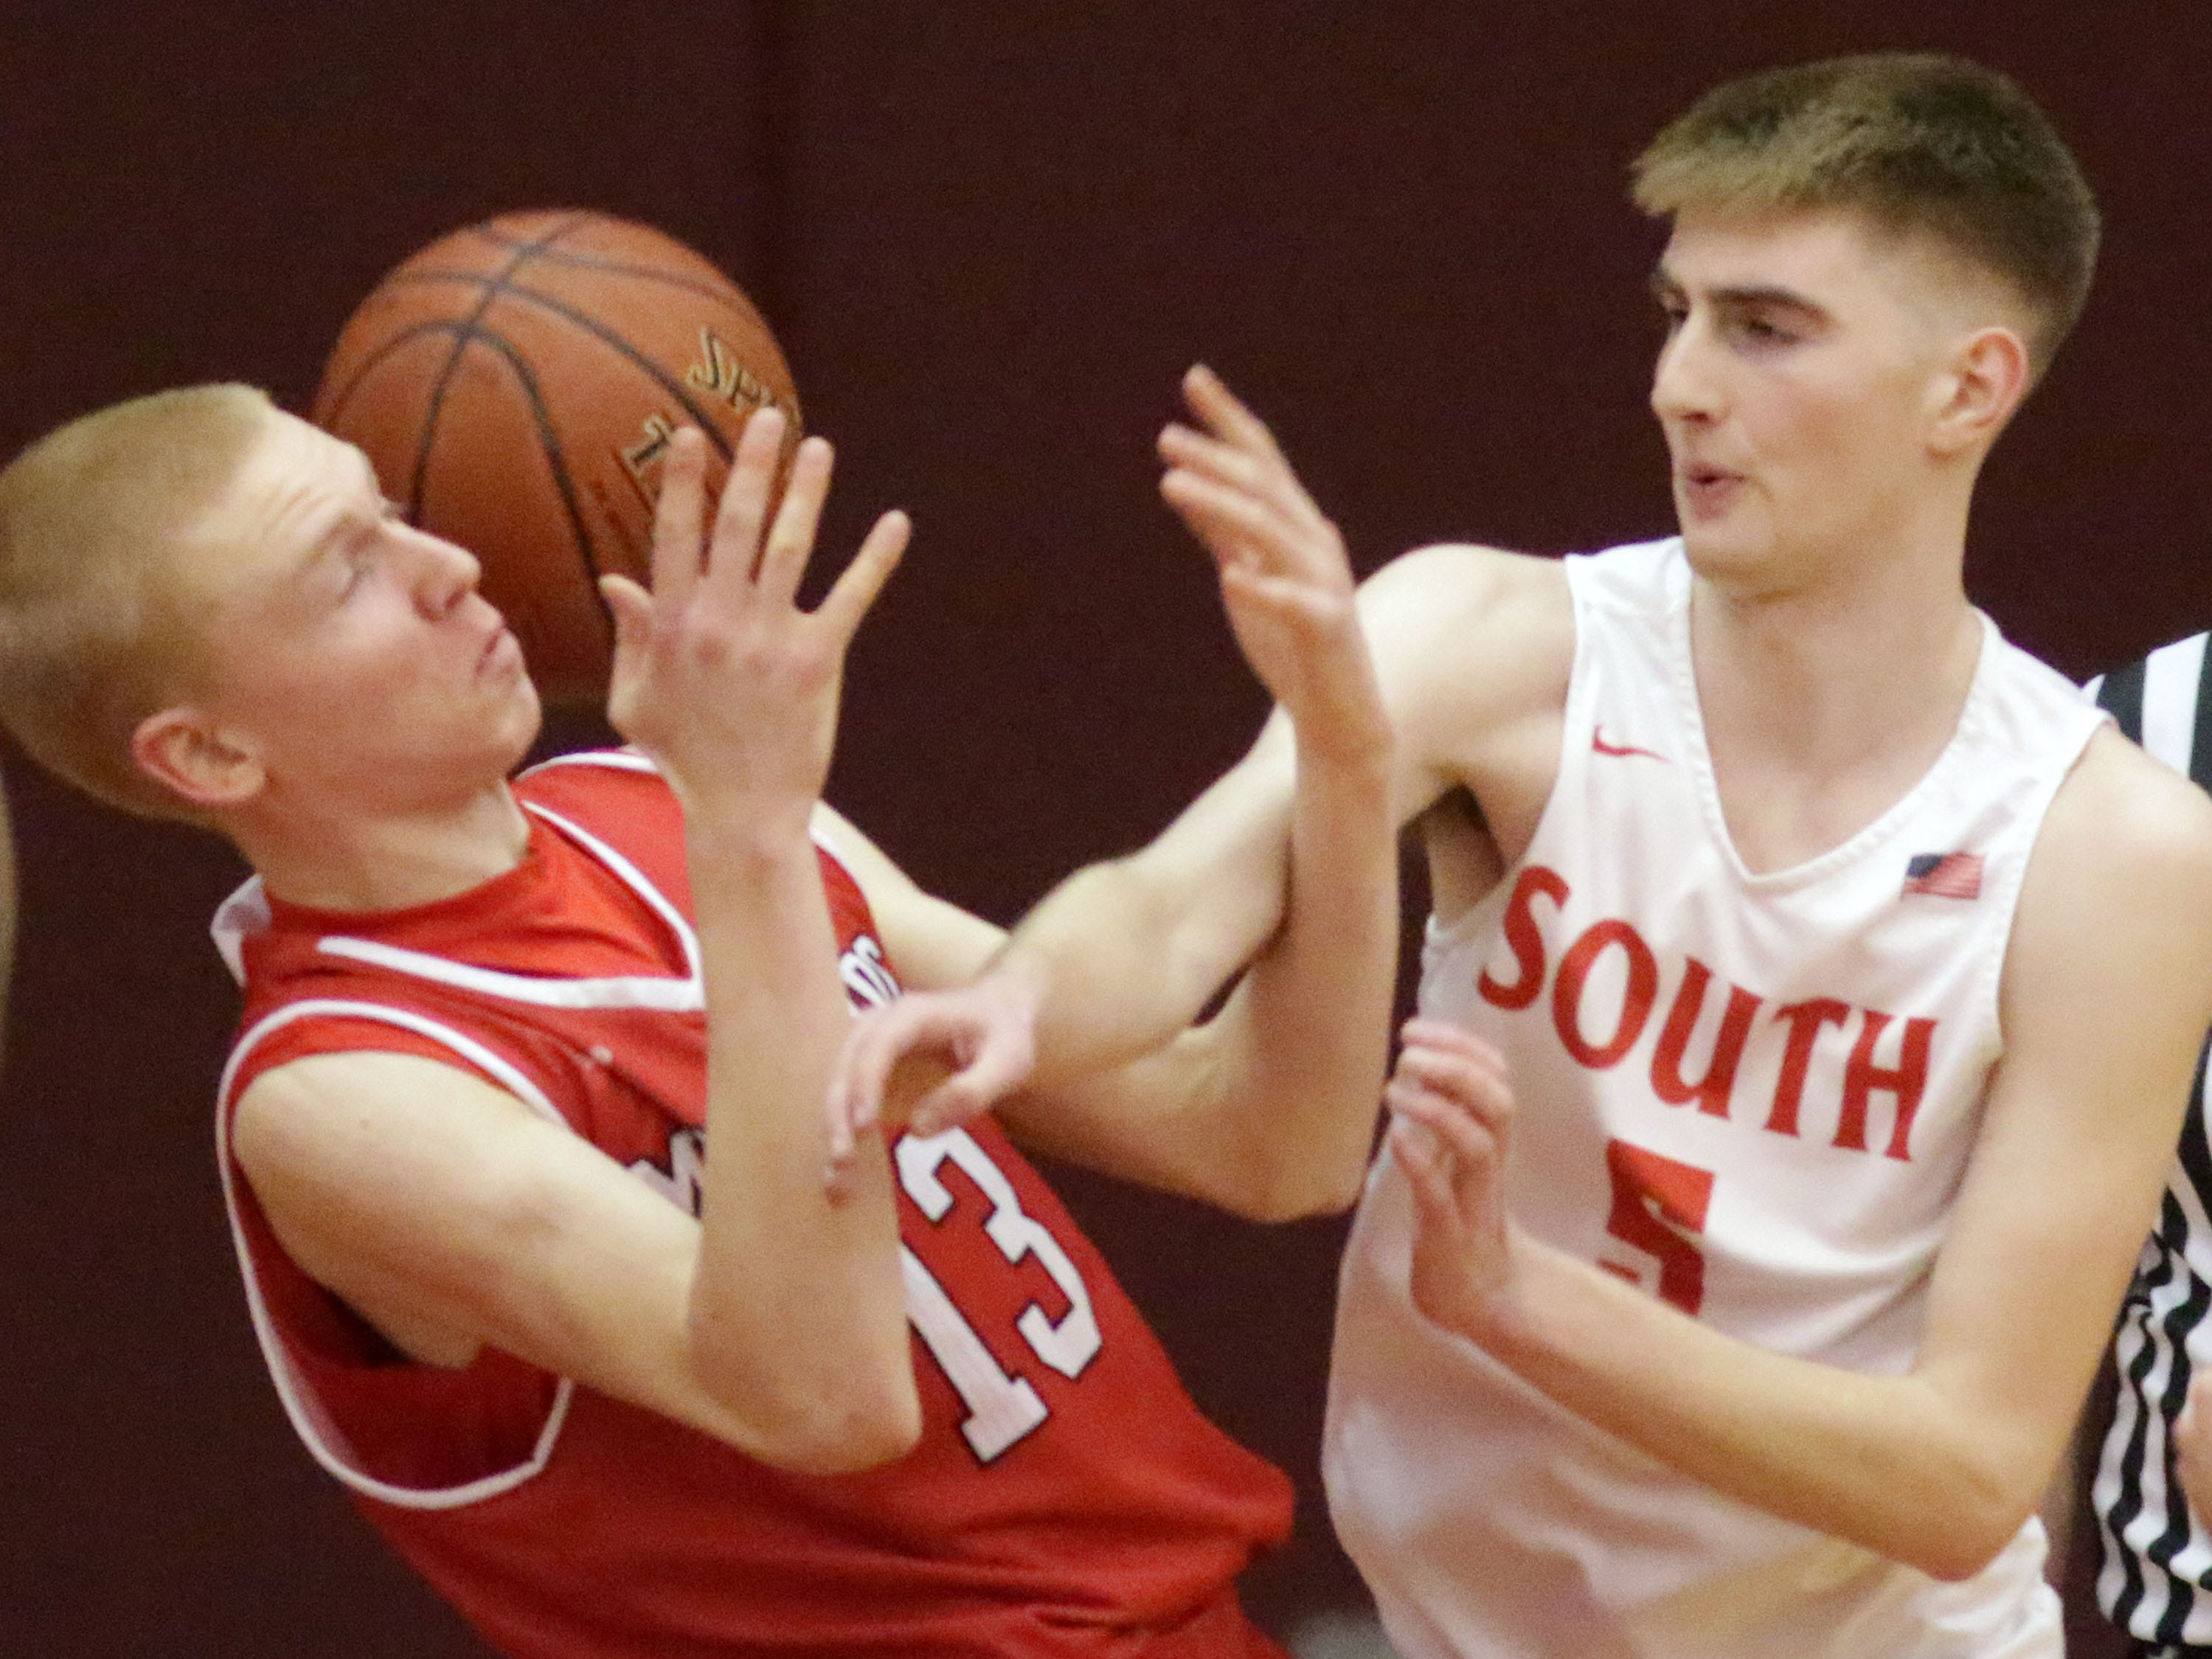 Manitowoc Lincoln's Sam Jacobson (13) and Sheboygan South's Jake Marver (5) bobble the ball, Tuesday, February 26, 2019, in Sheboygan, Wis.